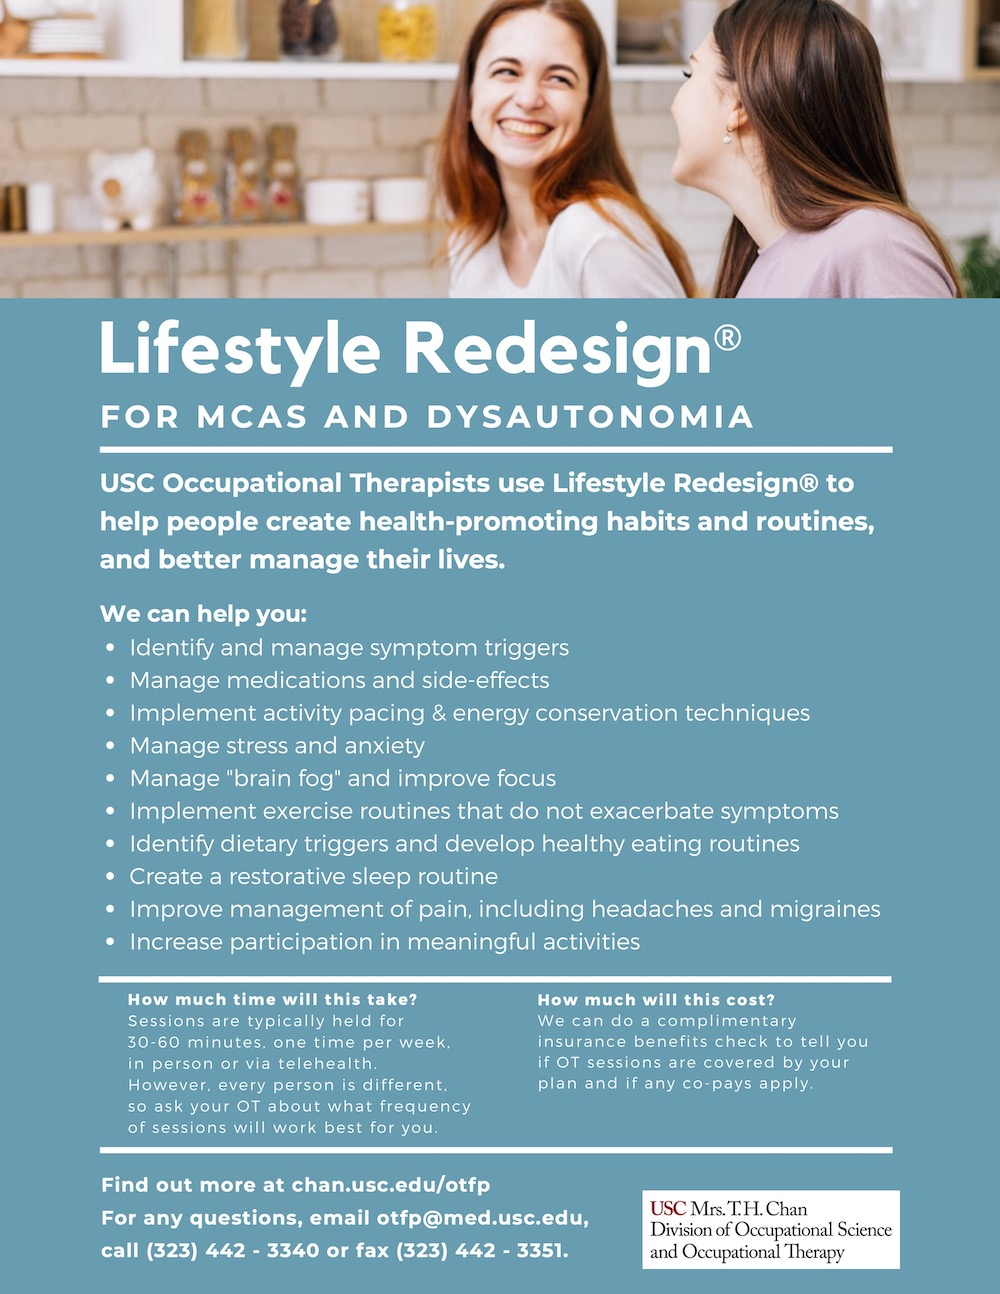 Lifestyle Redesign for MCAS and Dysautonomia